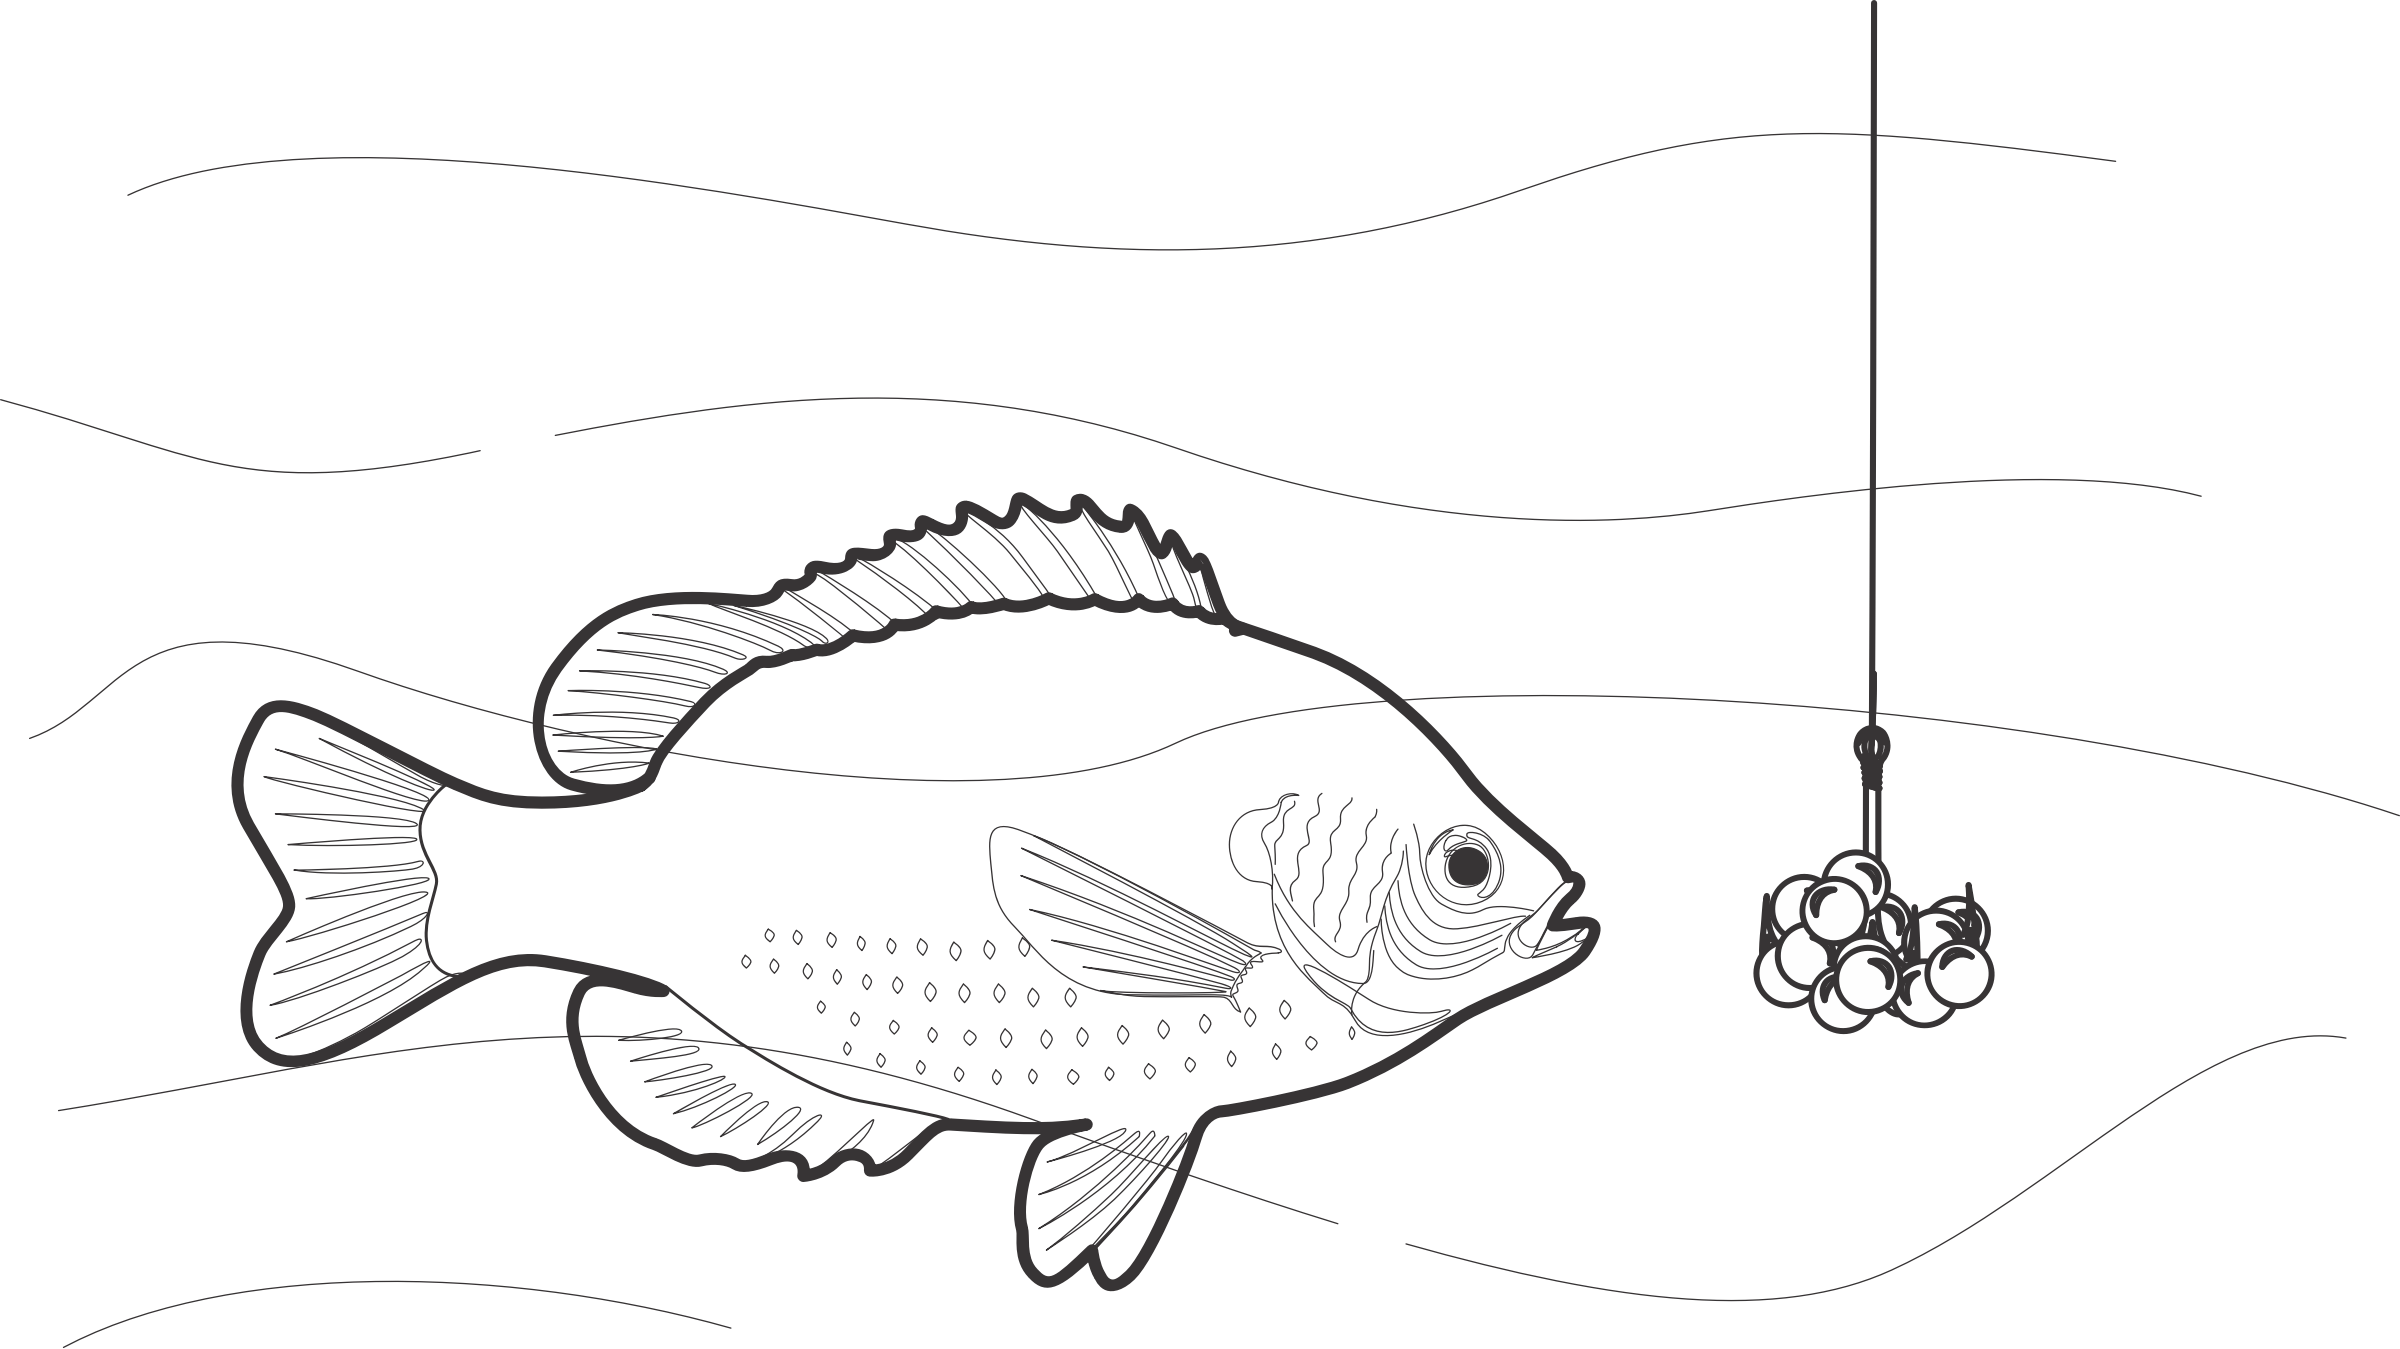 Fish with bubbles clipart black and white banner freeuse stock Clipart - Beaded Fish Bait banner freeuse stock